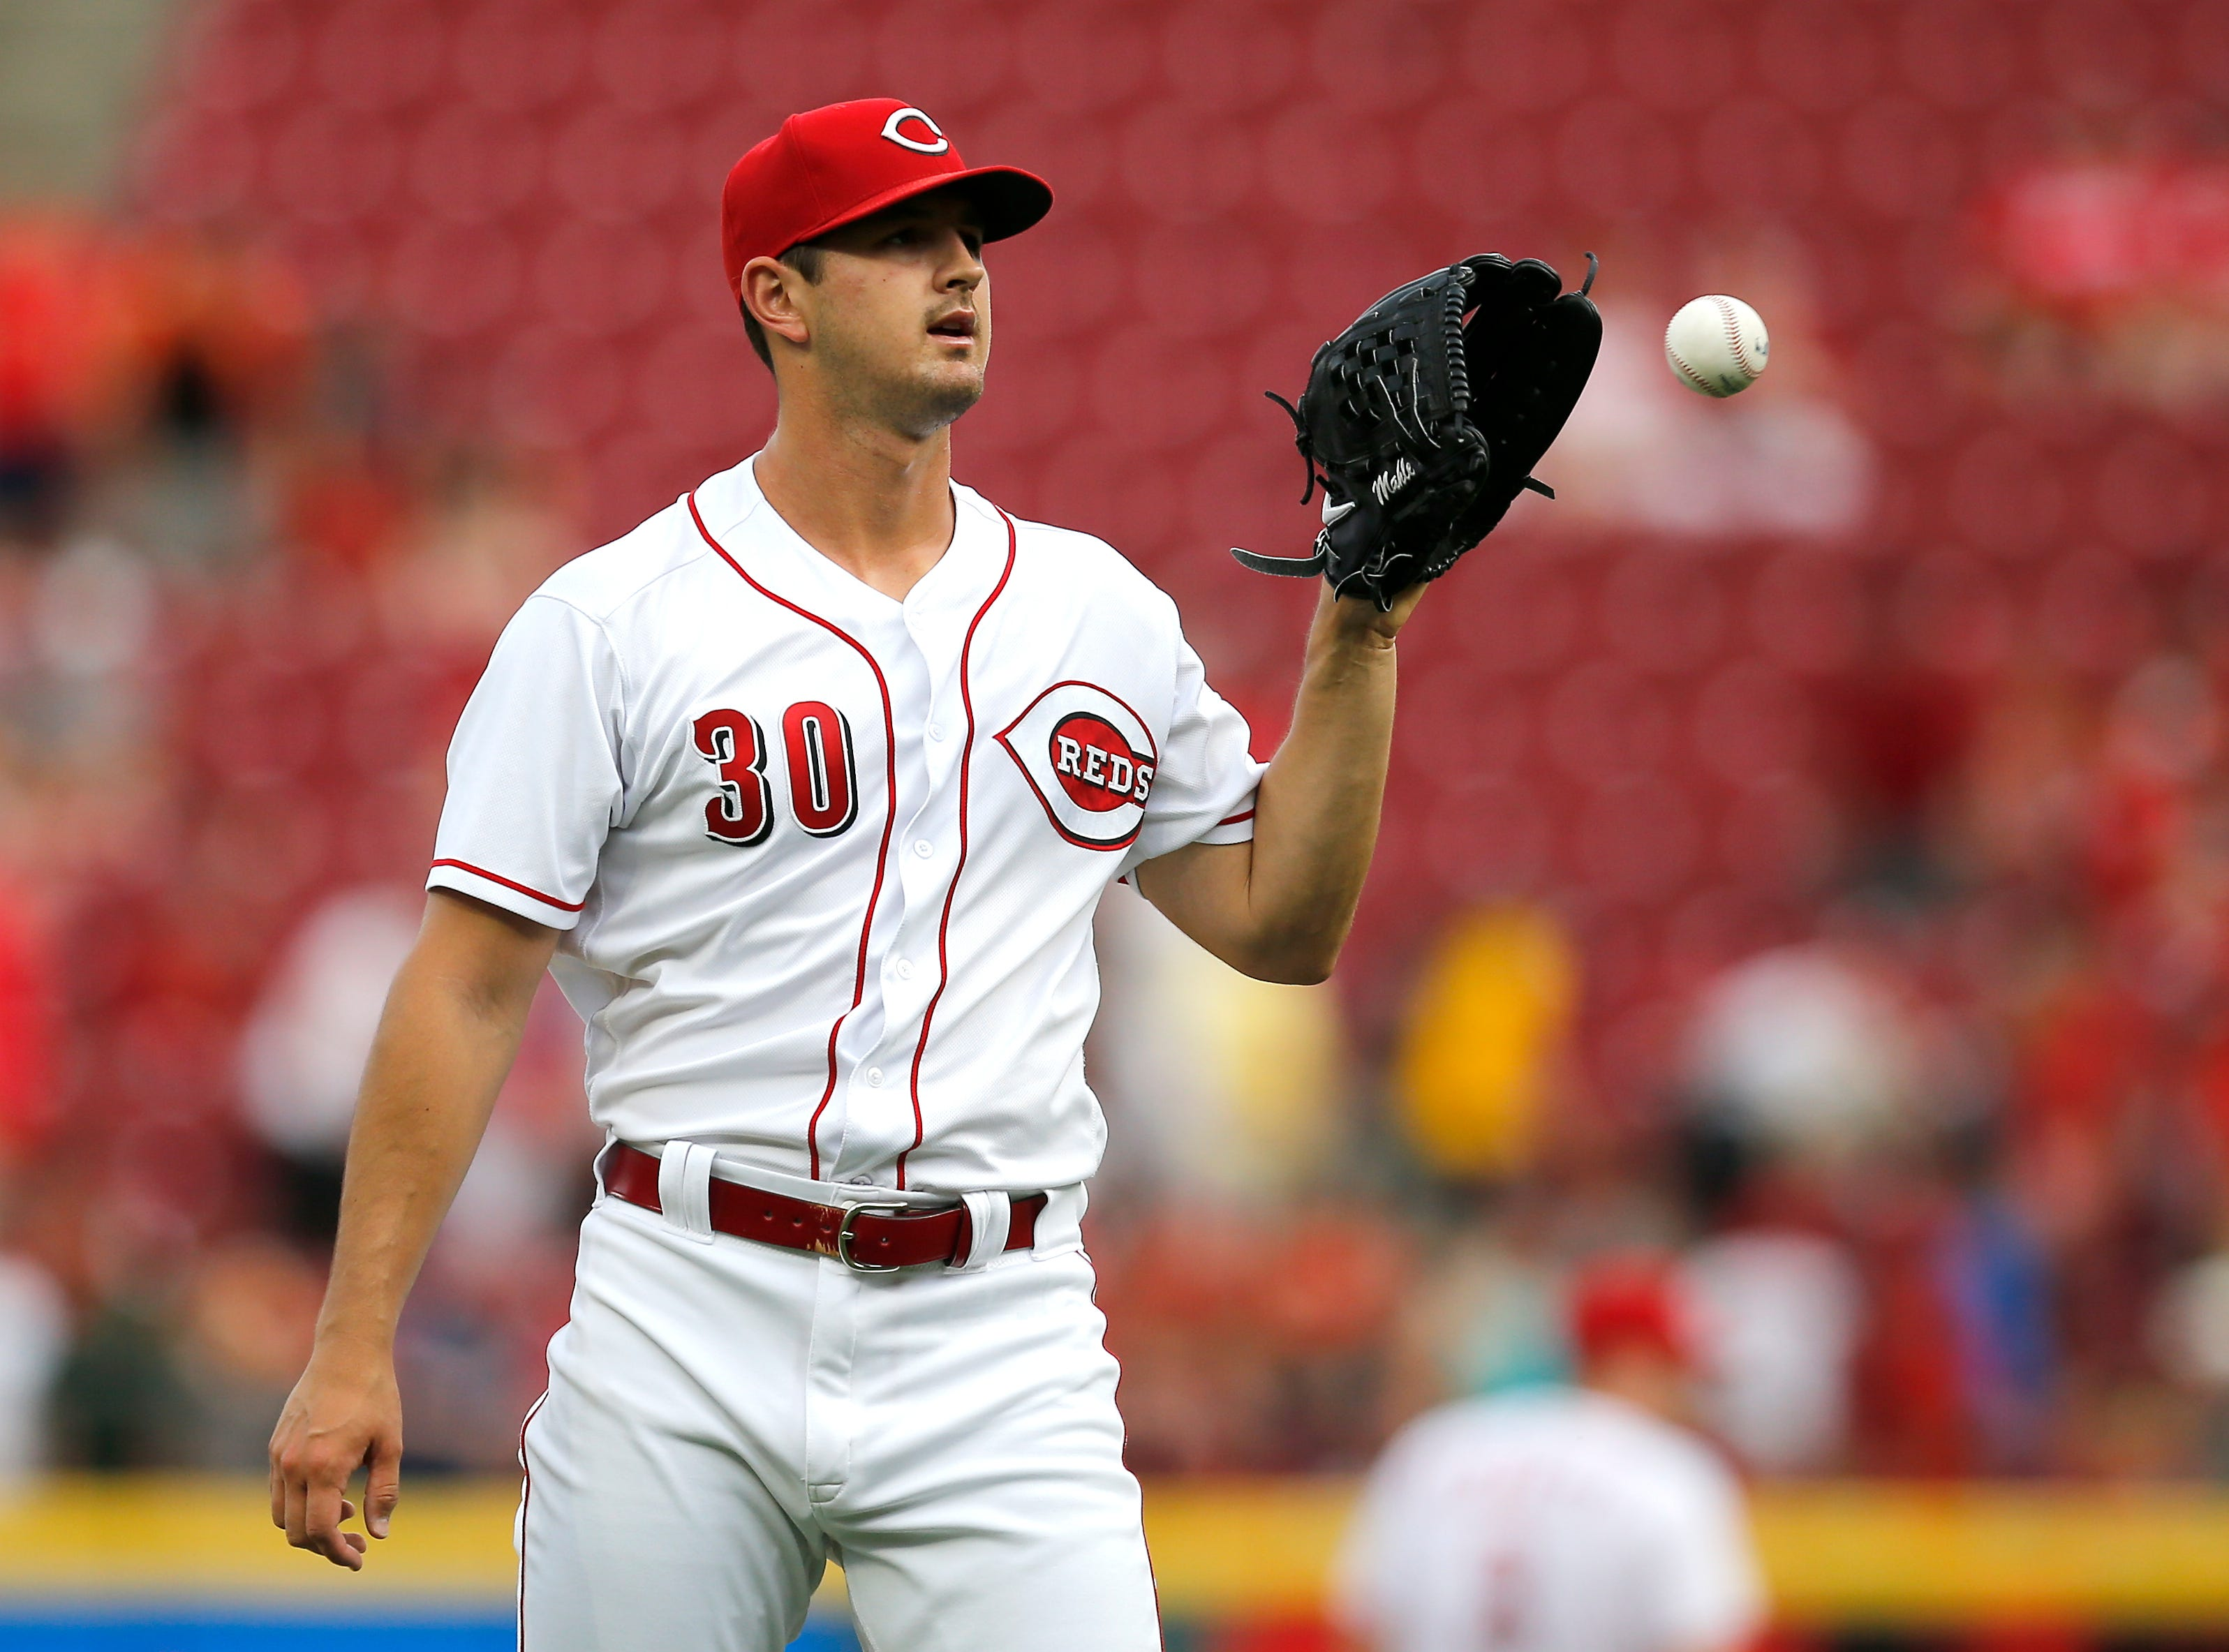 Cincinnati Reds starting pitcher Tyler Mahle (30) gets a new ball after giving up a two-run home run to Philadelphia Phillies first baseman Carlos Santana (41) in the top of the first inning of the MLB National League game between the Cincinnati Reds and the Philadelphia Phillies at Great American Ball Park in downtown Cincinnati on Thursday, July 26, 2018. The Reds trailed 4-2 after three innings.